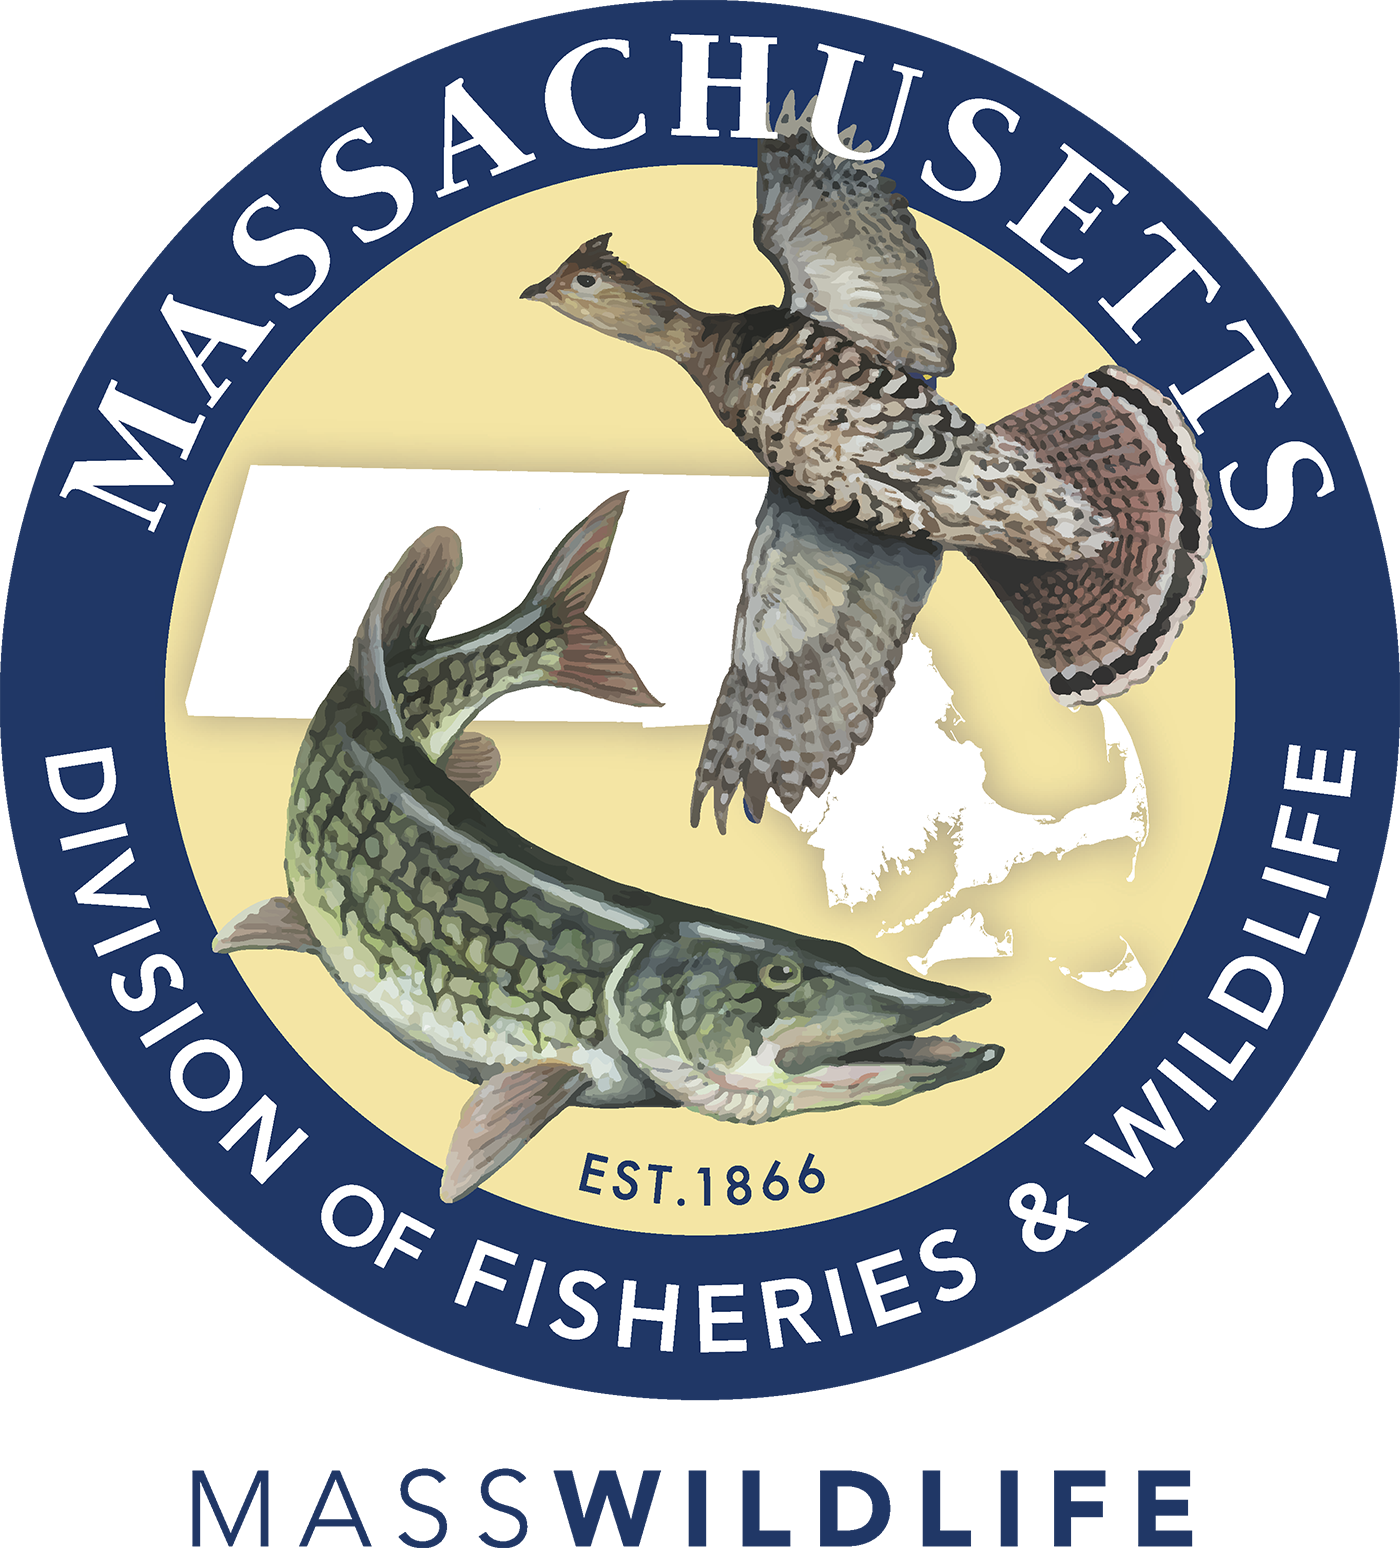 Massachusetts Division of Fisheries and Wildlife logo. MassWildlife is responsible for the conservation of freshwater fish and wildlife in the Commonwealth, including endangered plants and animals. MassWildlife restores, protects, and manages land for wildlife to thrive and for people to enjoy.